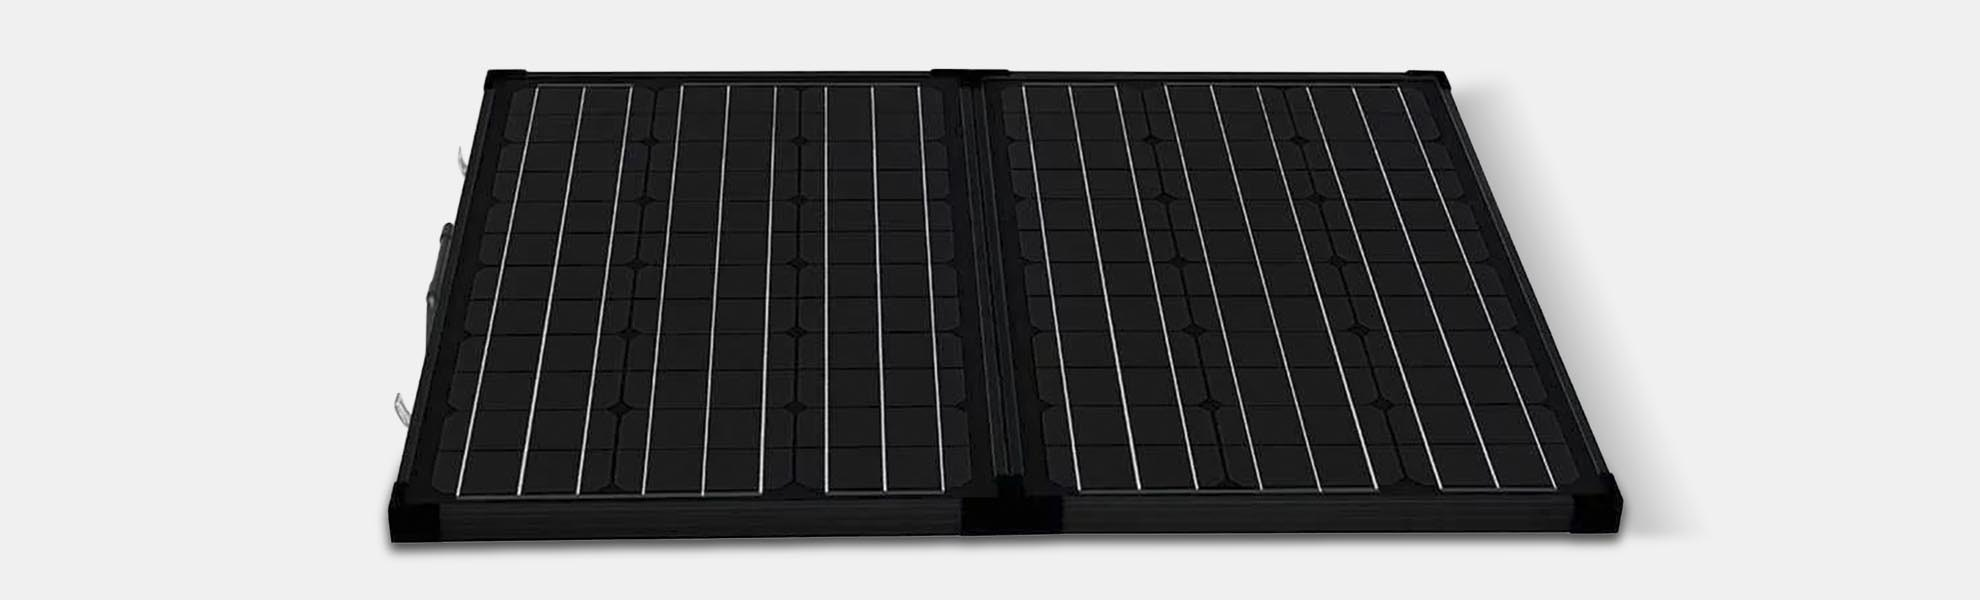 Nature Power Briefcase Solar Panels